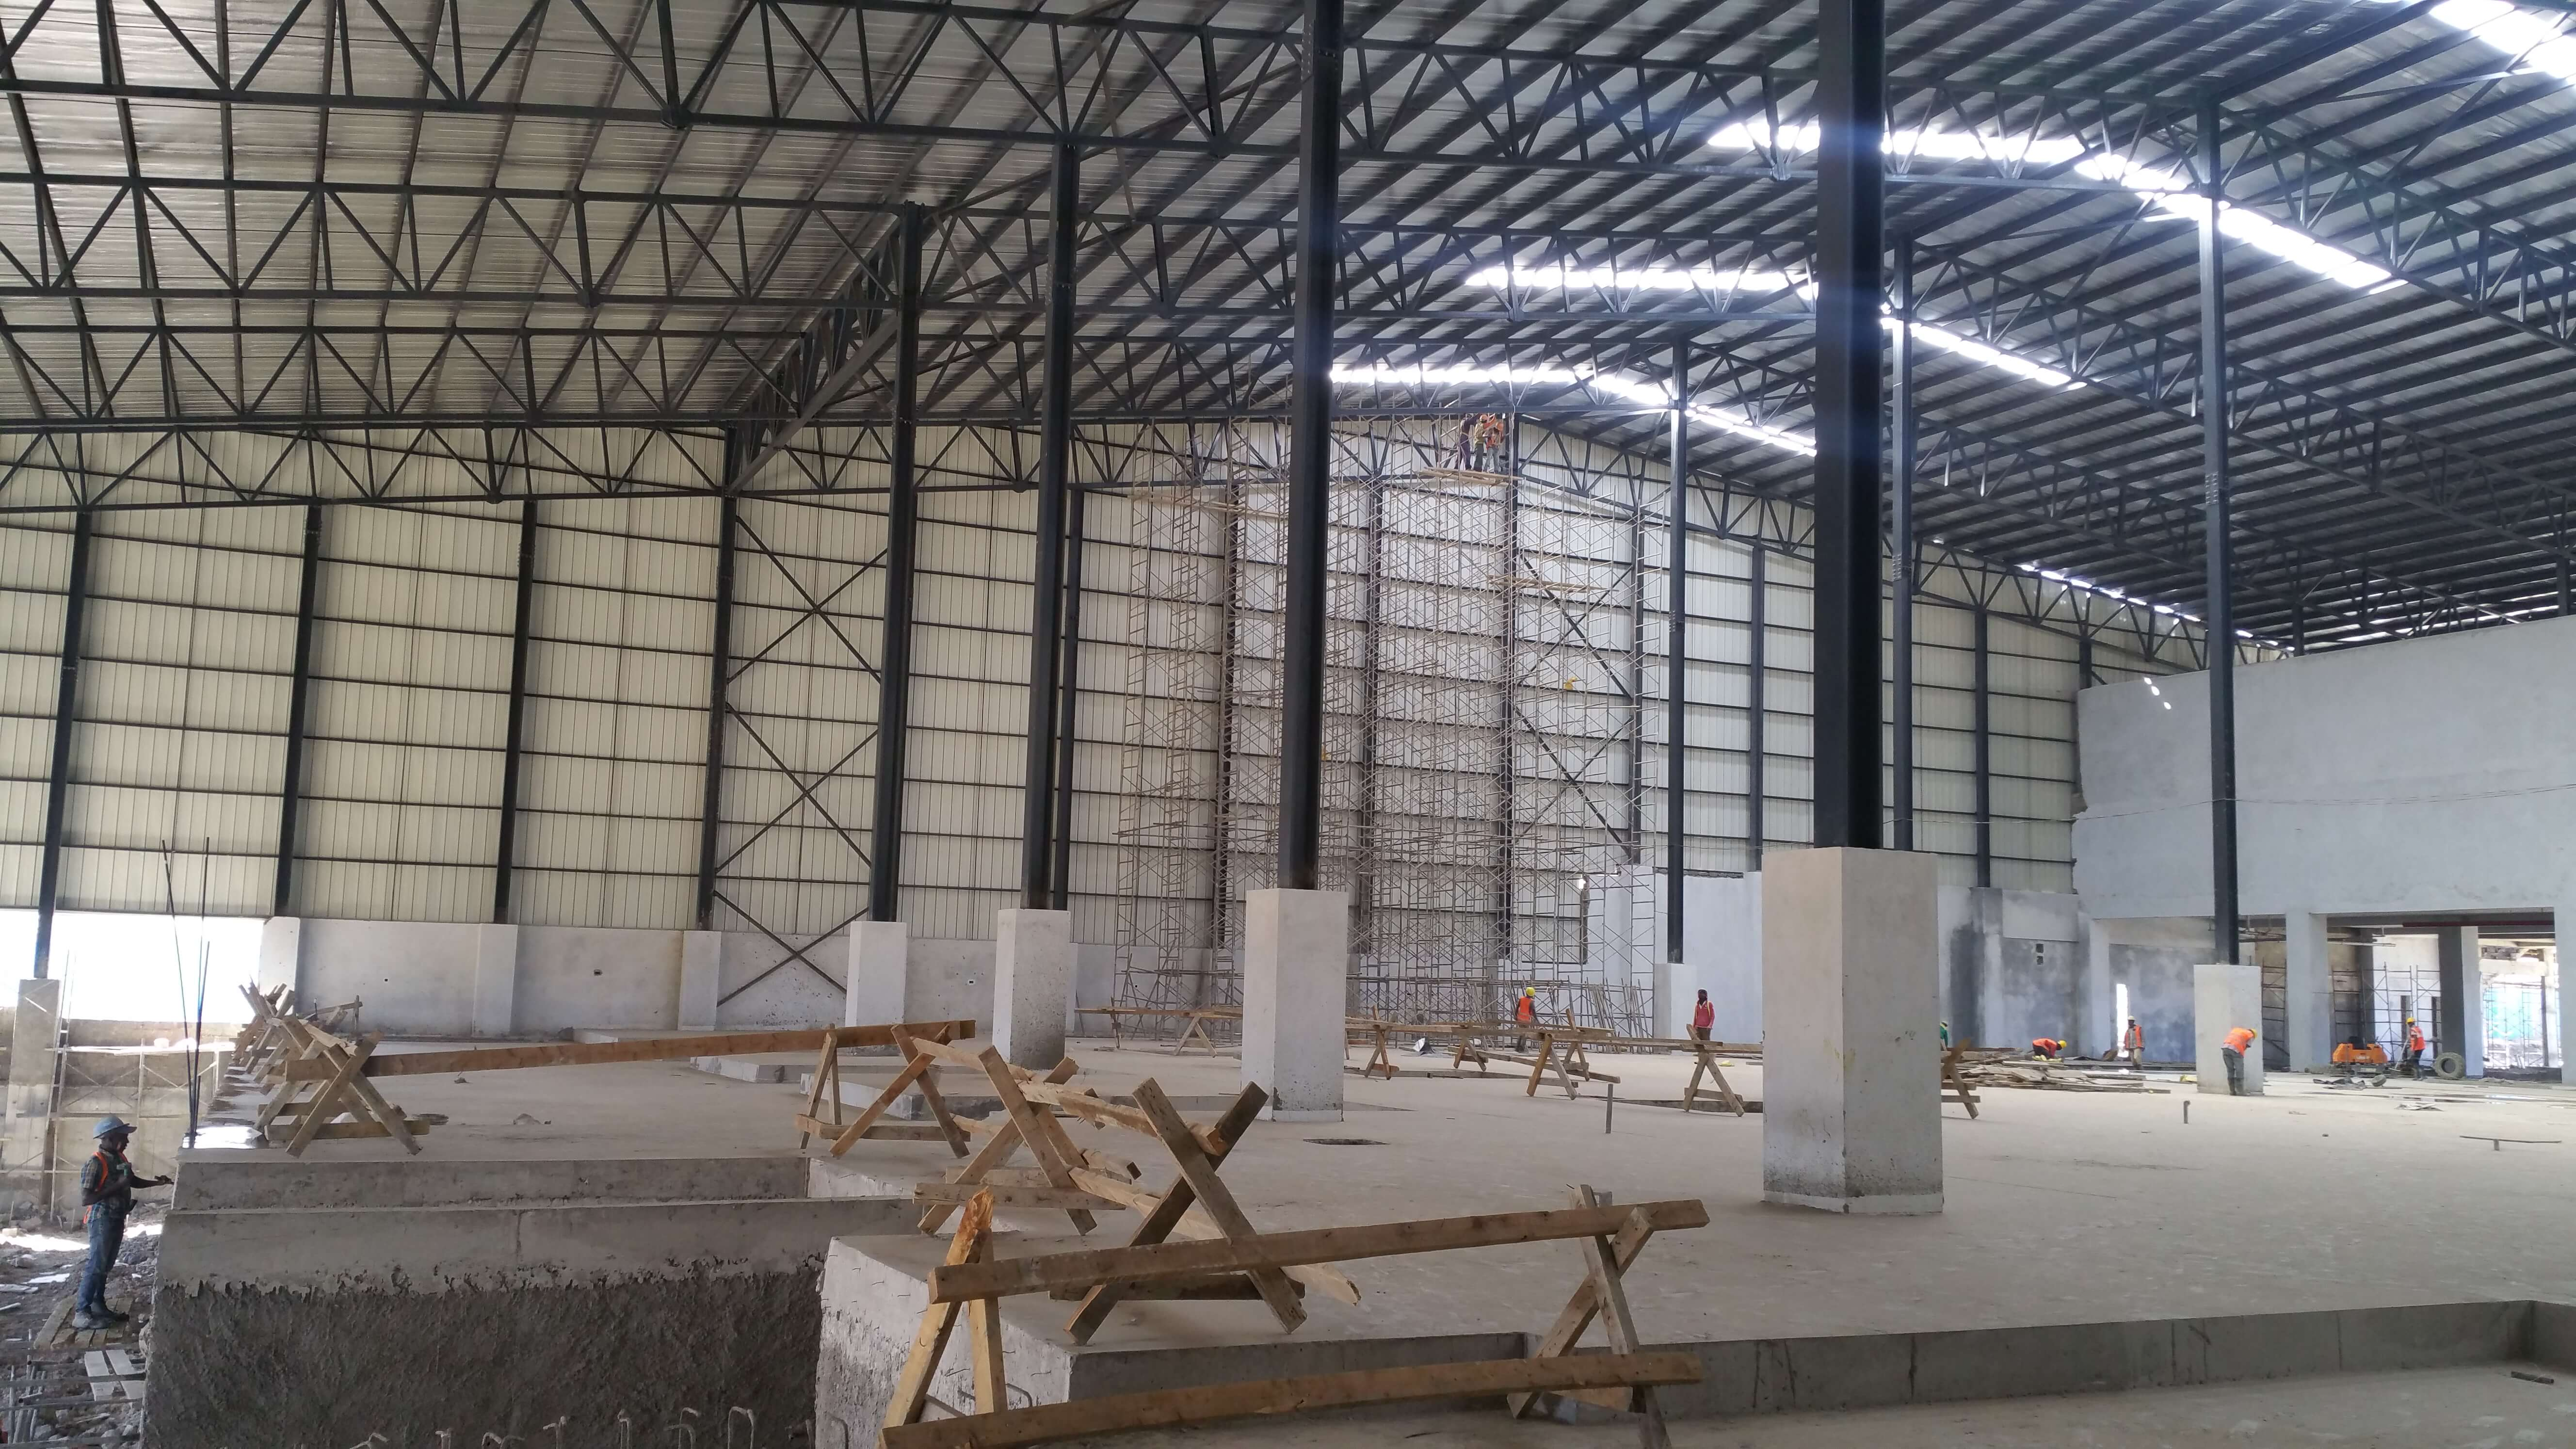 PROPOSED MITCHELL COTTS CARGO TERMINAL - JKIA - 2018 - HRS (4)